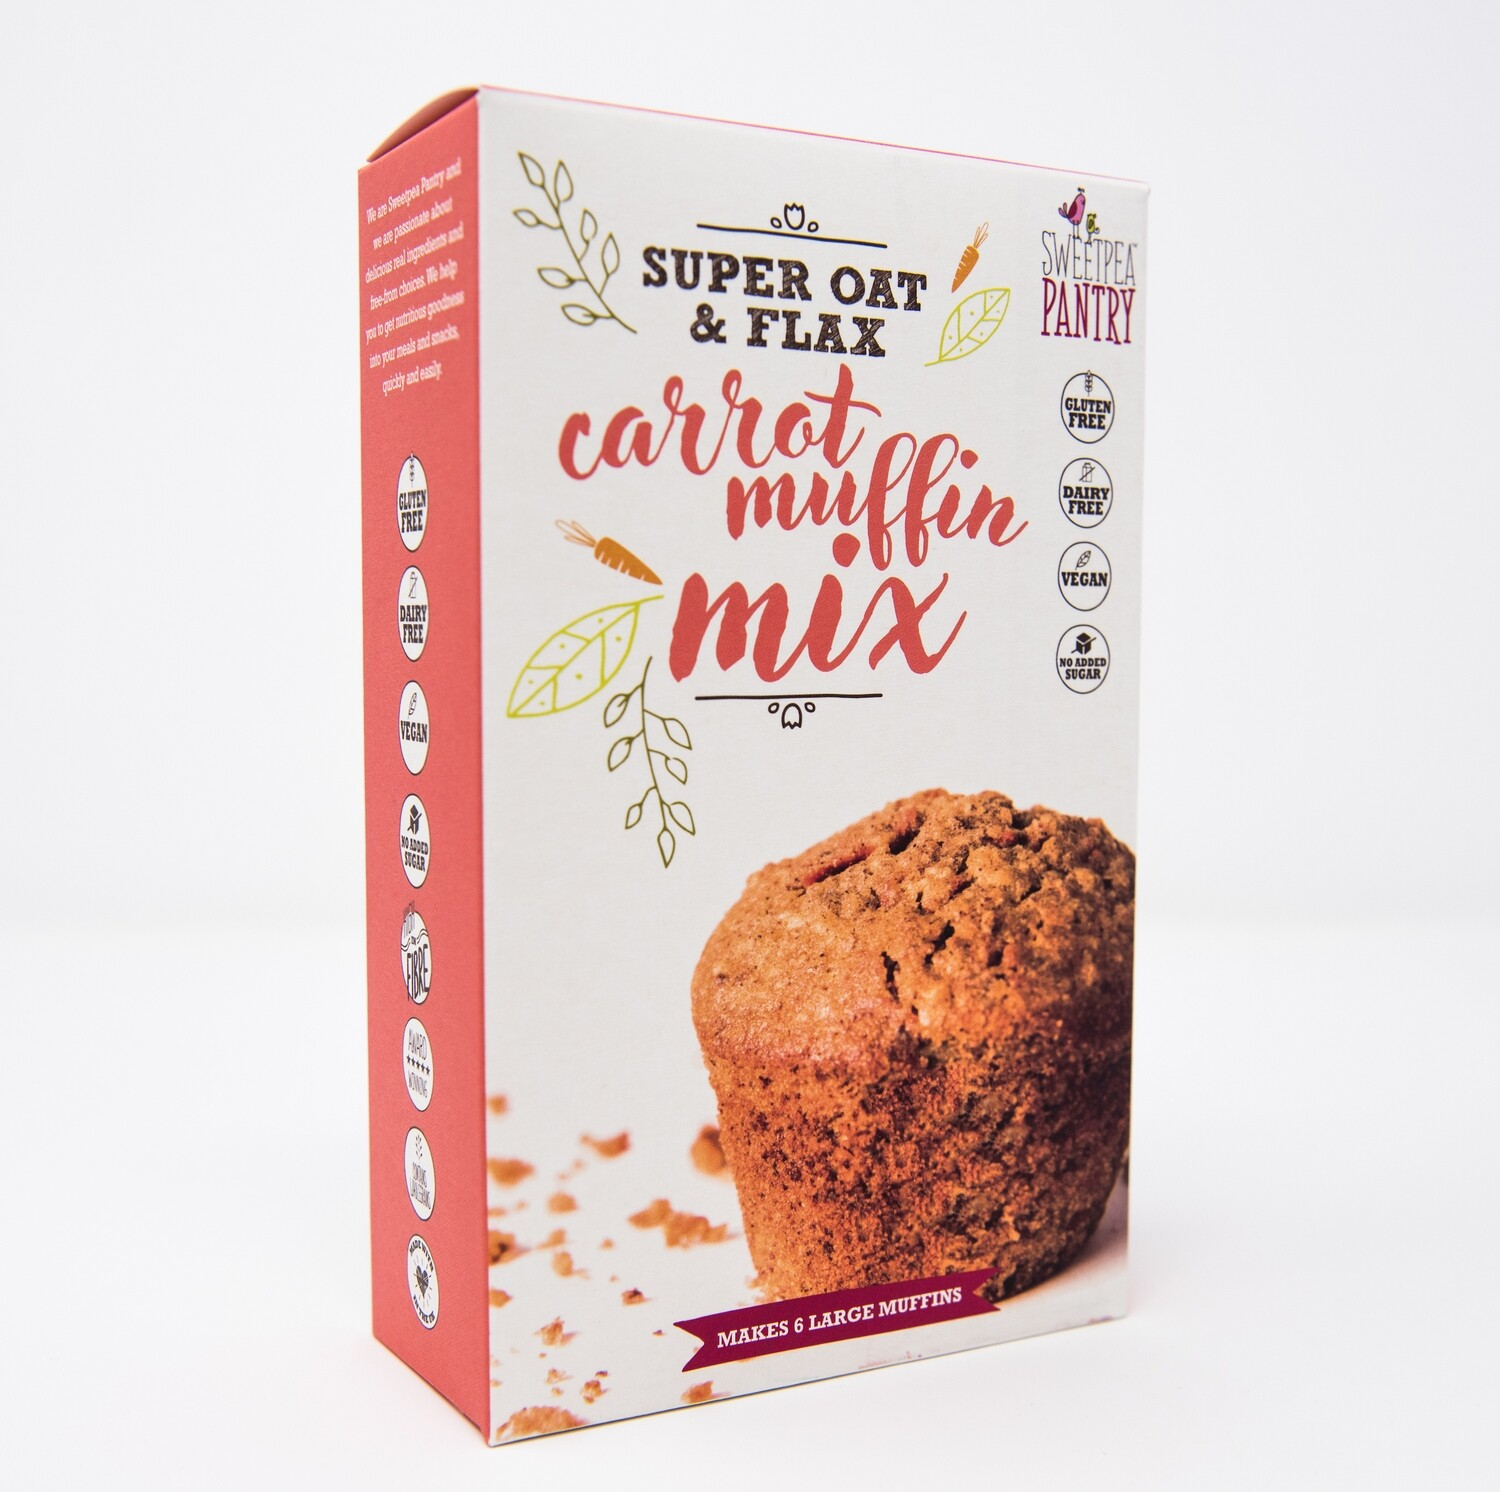 Carrot Muffin Mix Mix with oats and flax (gluten-free)